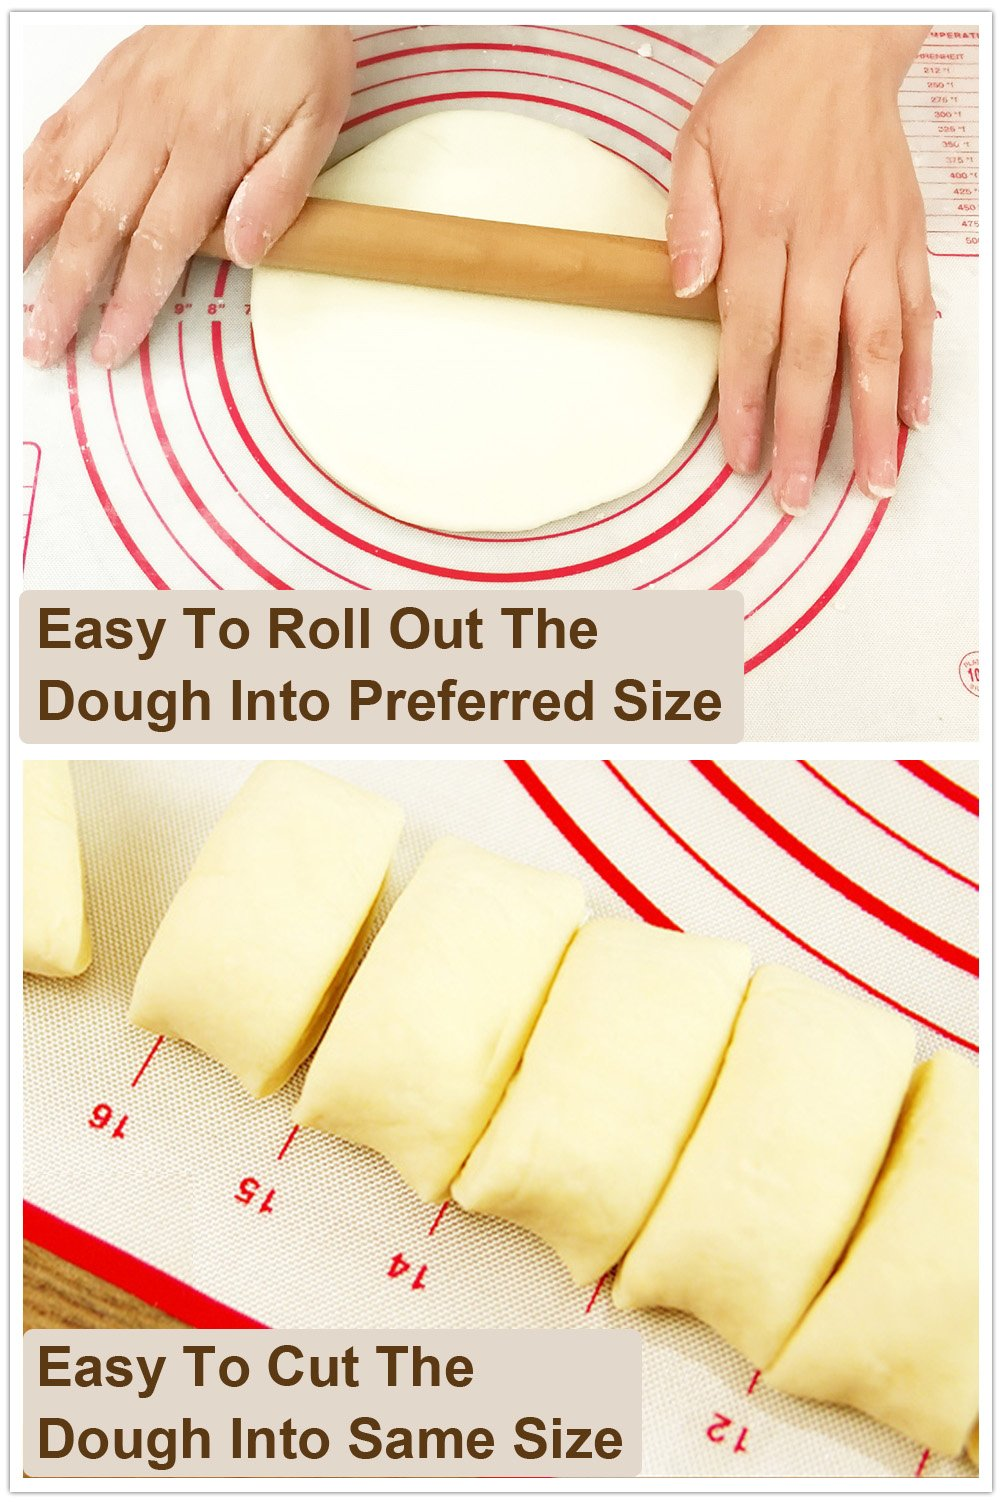 ETHDA Silicone Pastry Mat Extra Large with Measurements, Dough Rolling Baking Sheet, Non-Slip, Non-Stick,Oven Liner for Fondant,Pie Crust,Cookie, Mother's Day Gift, XL (19.5''x23.5'') by Ethda (Image #5)